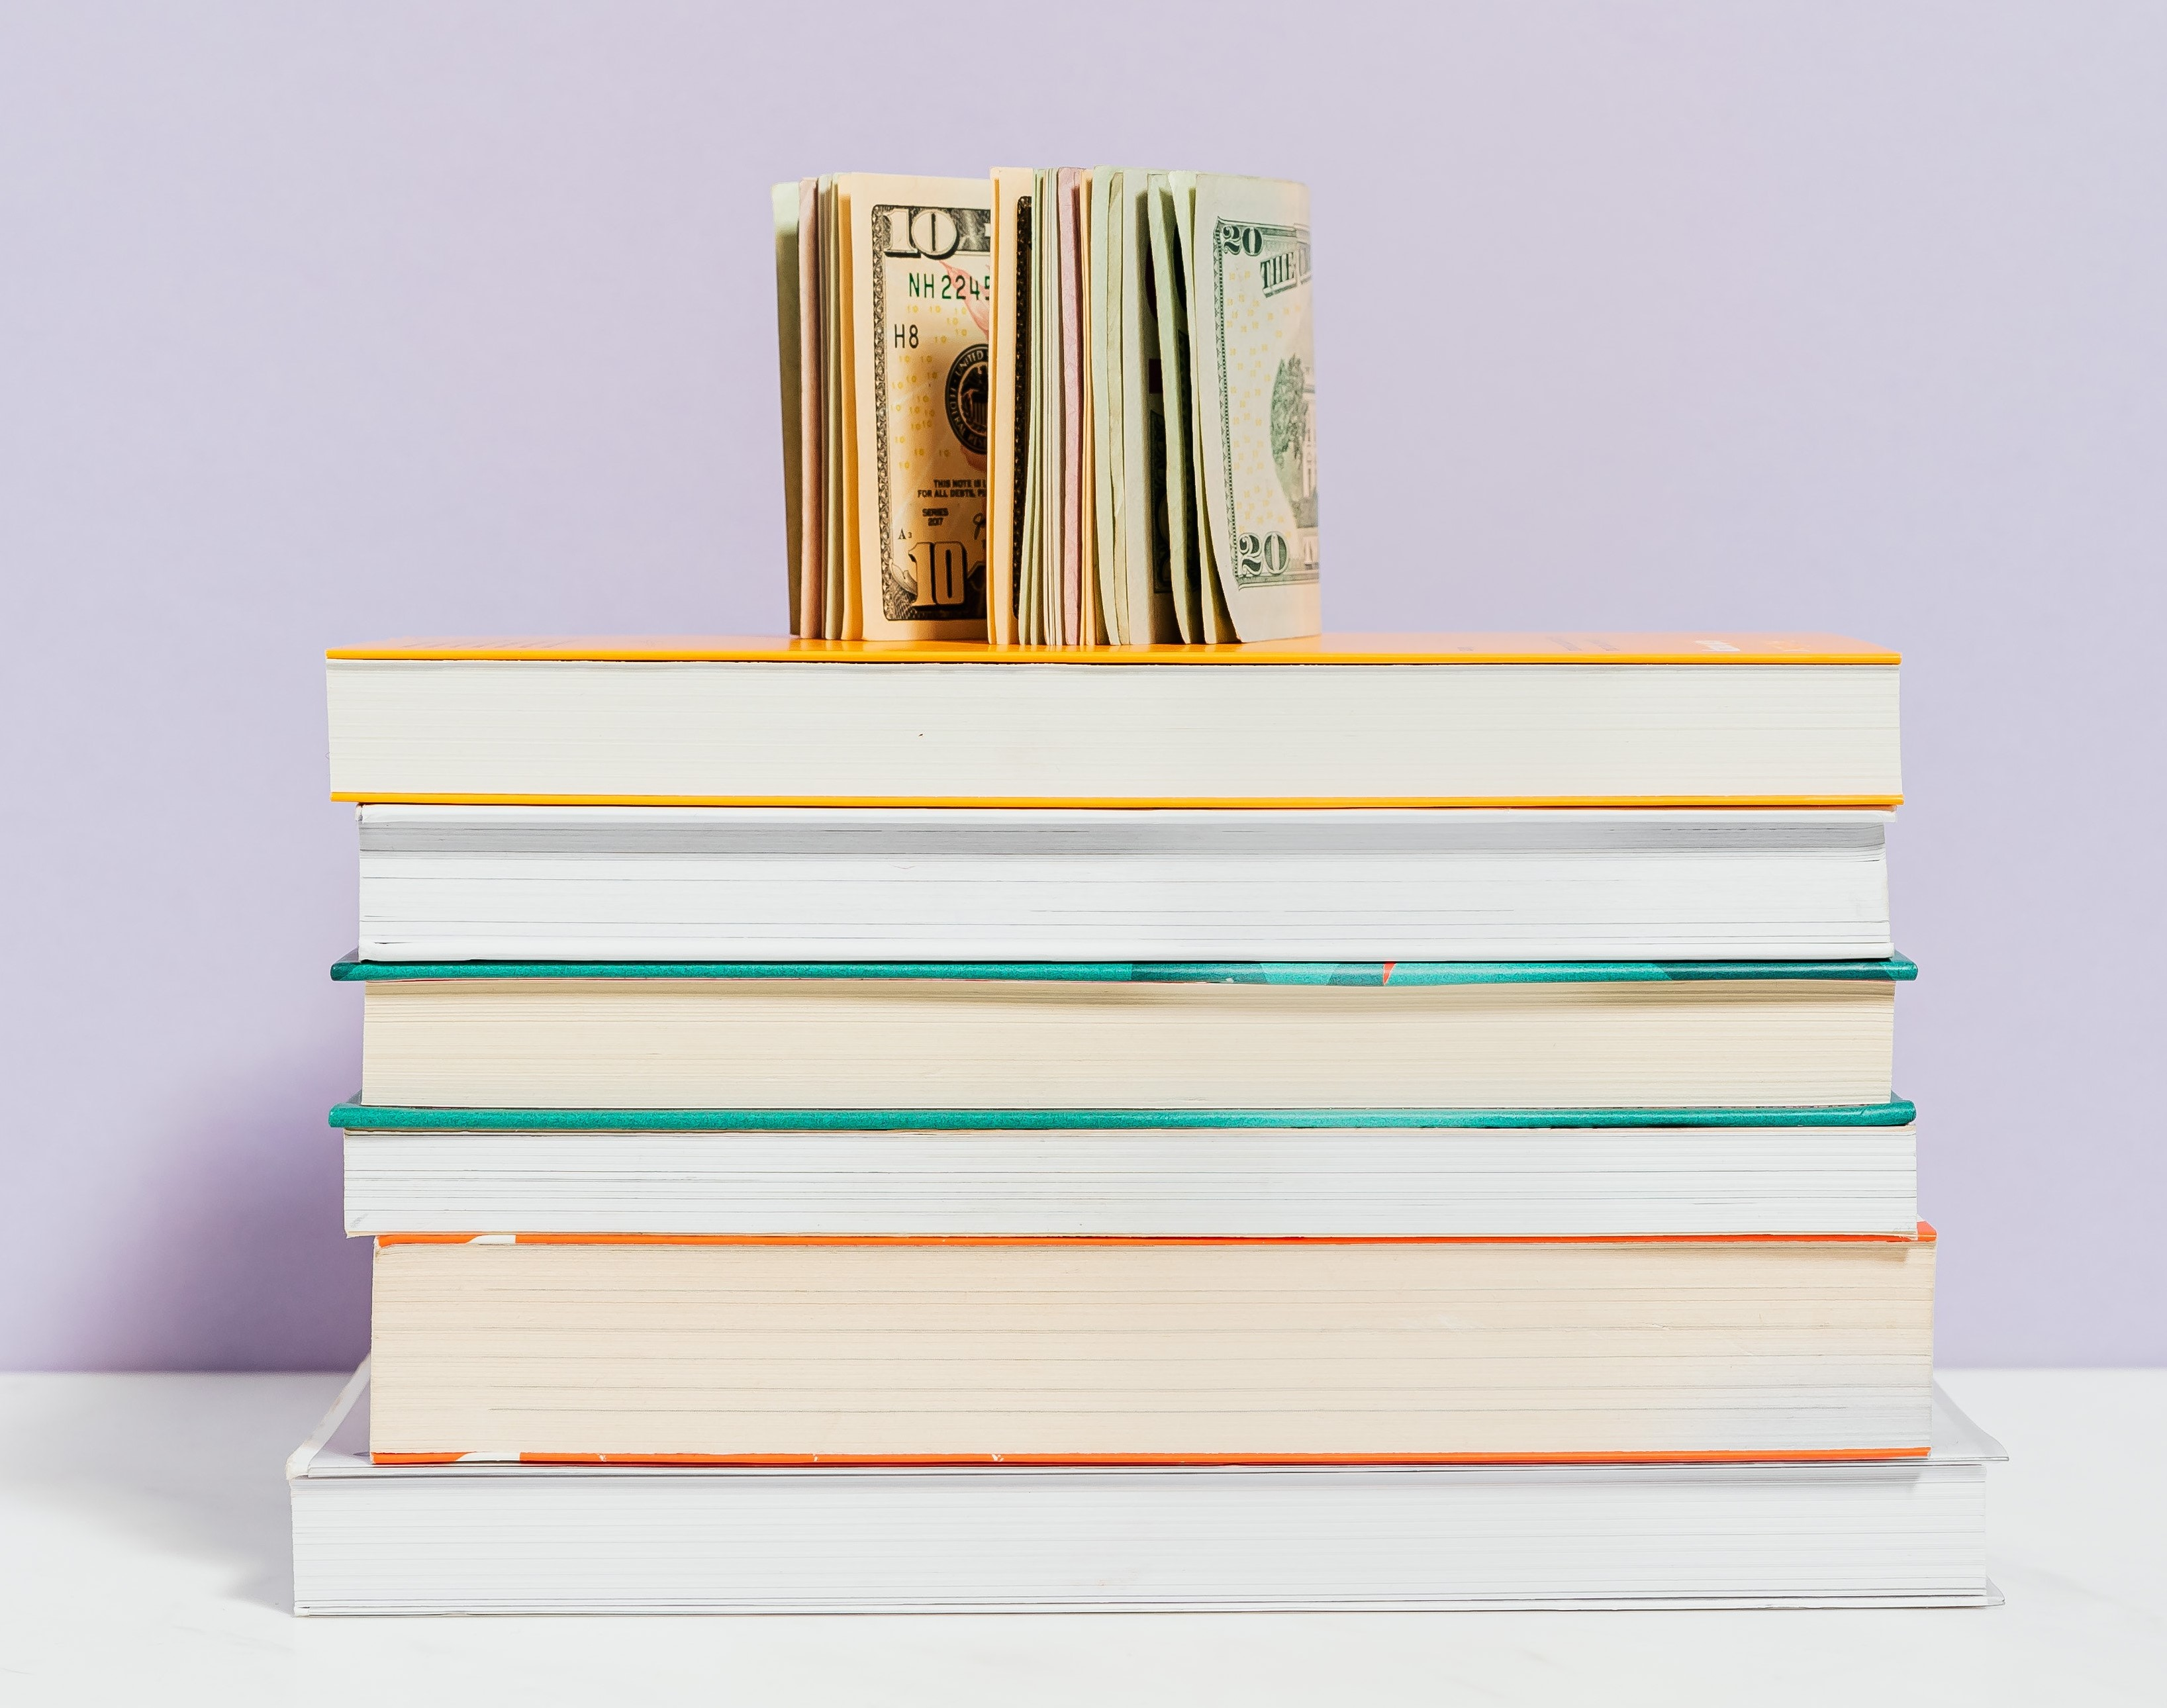 Stack of books with a roll of ten dollar bills on top